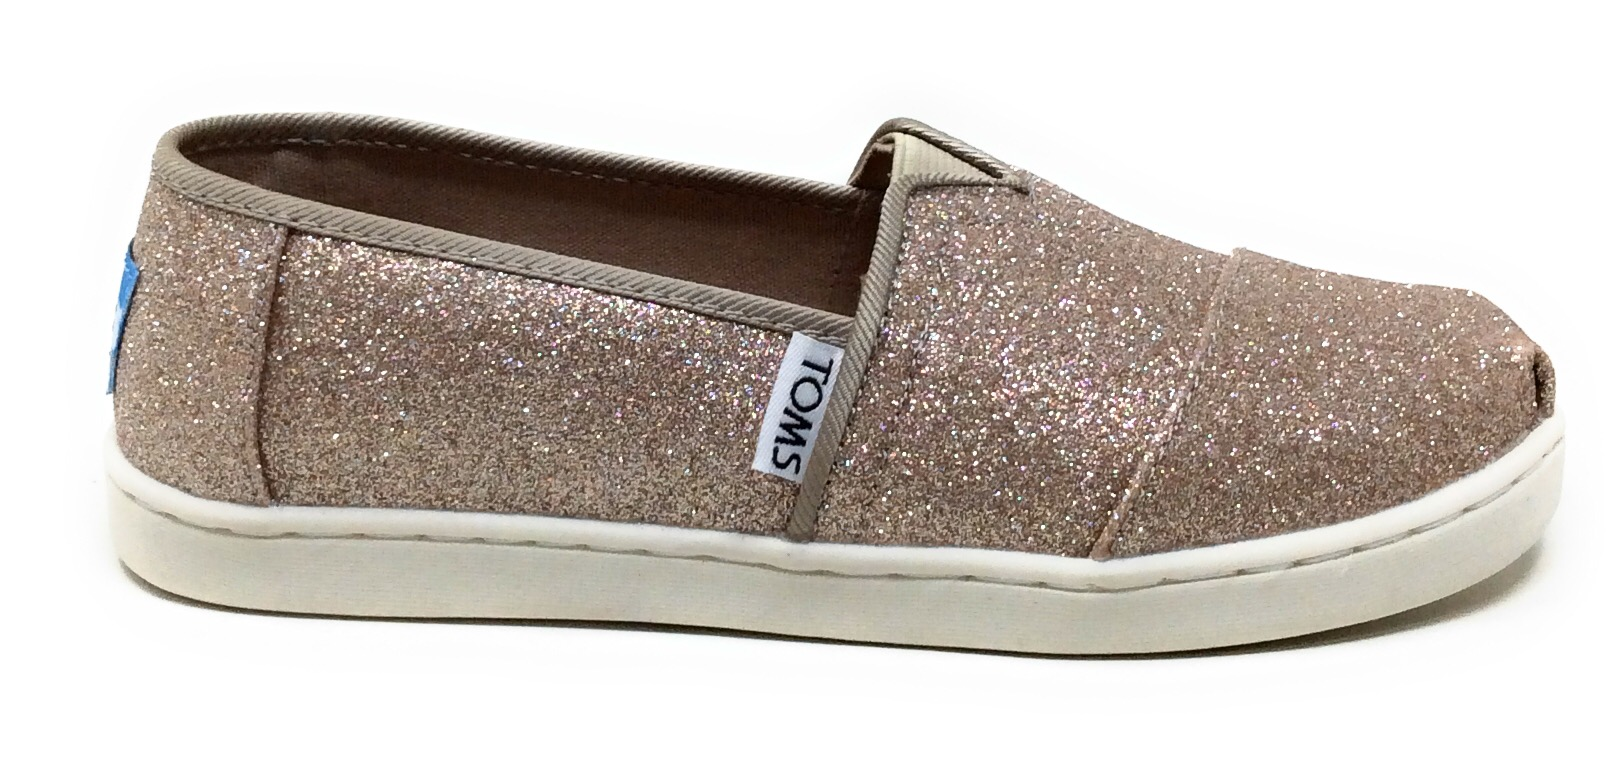 Toms Youth Girls Classic Slip On Casual